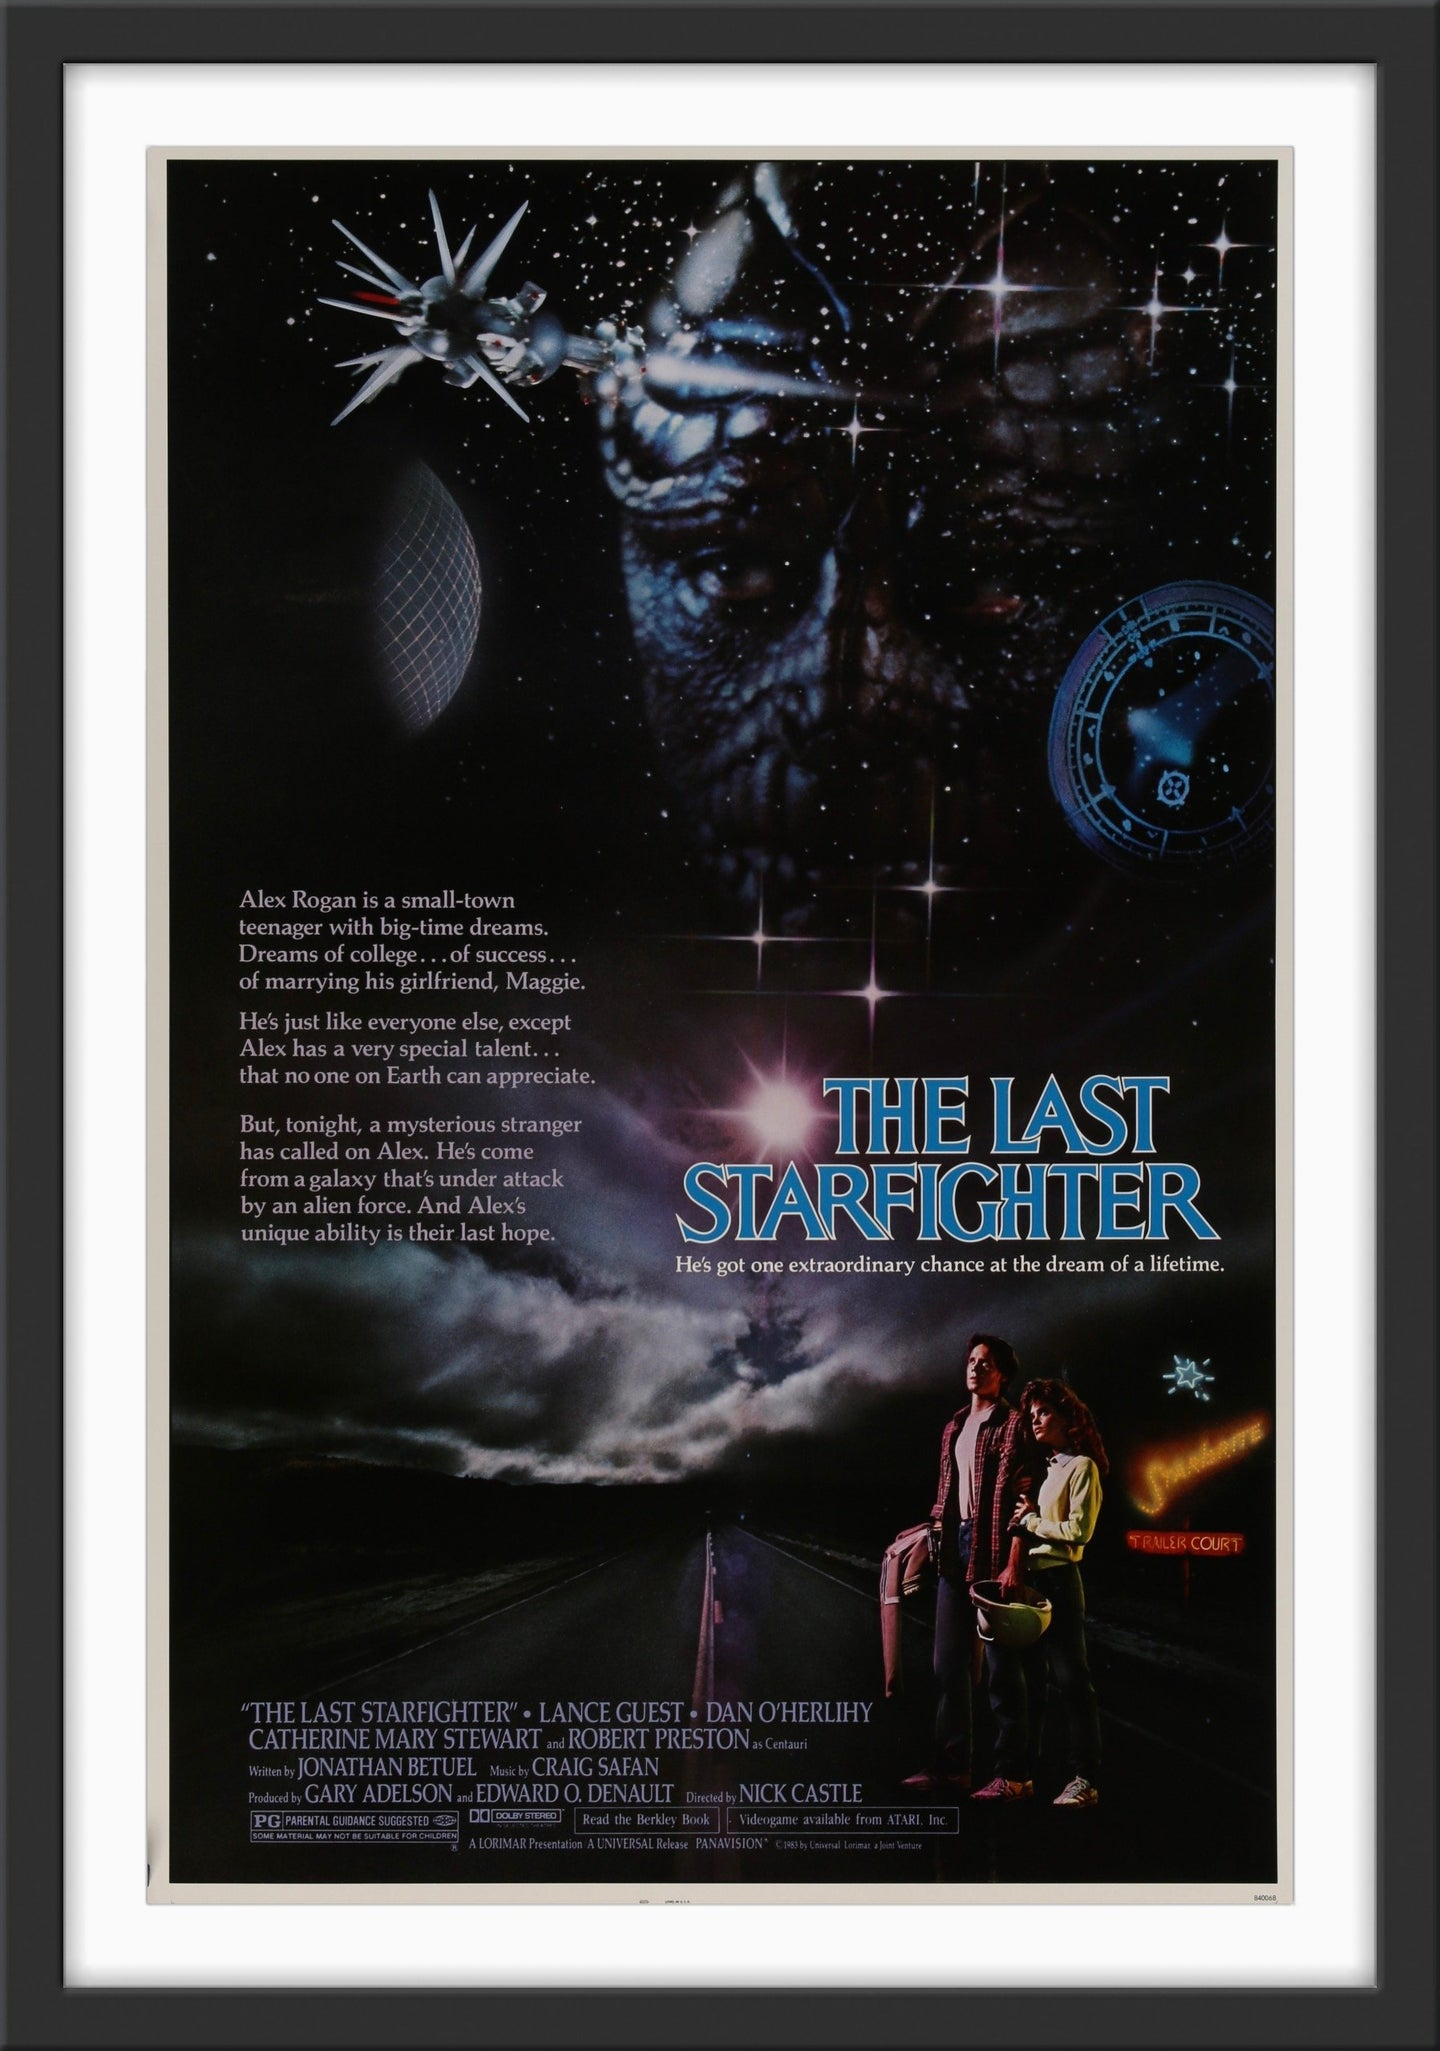 An original movie poster for the film The Last Starfighter